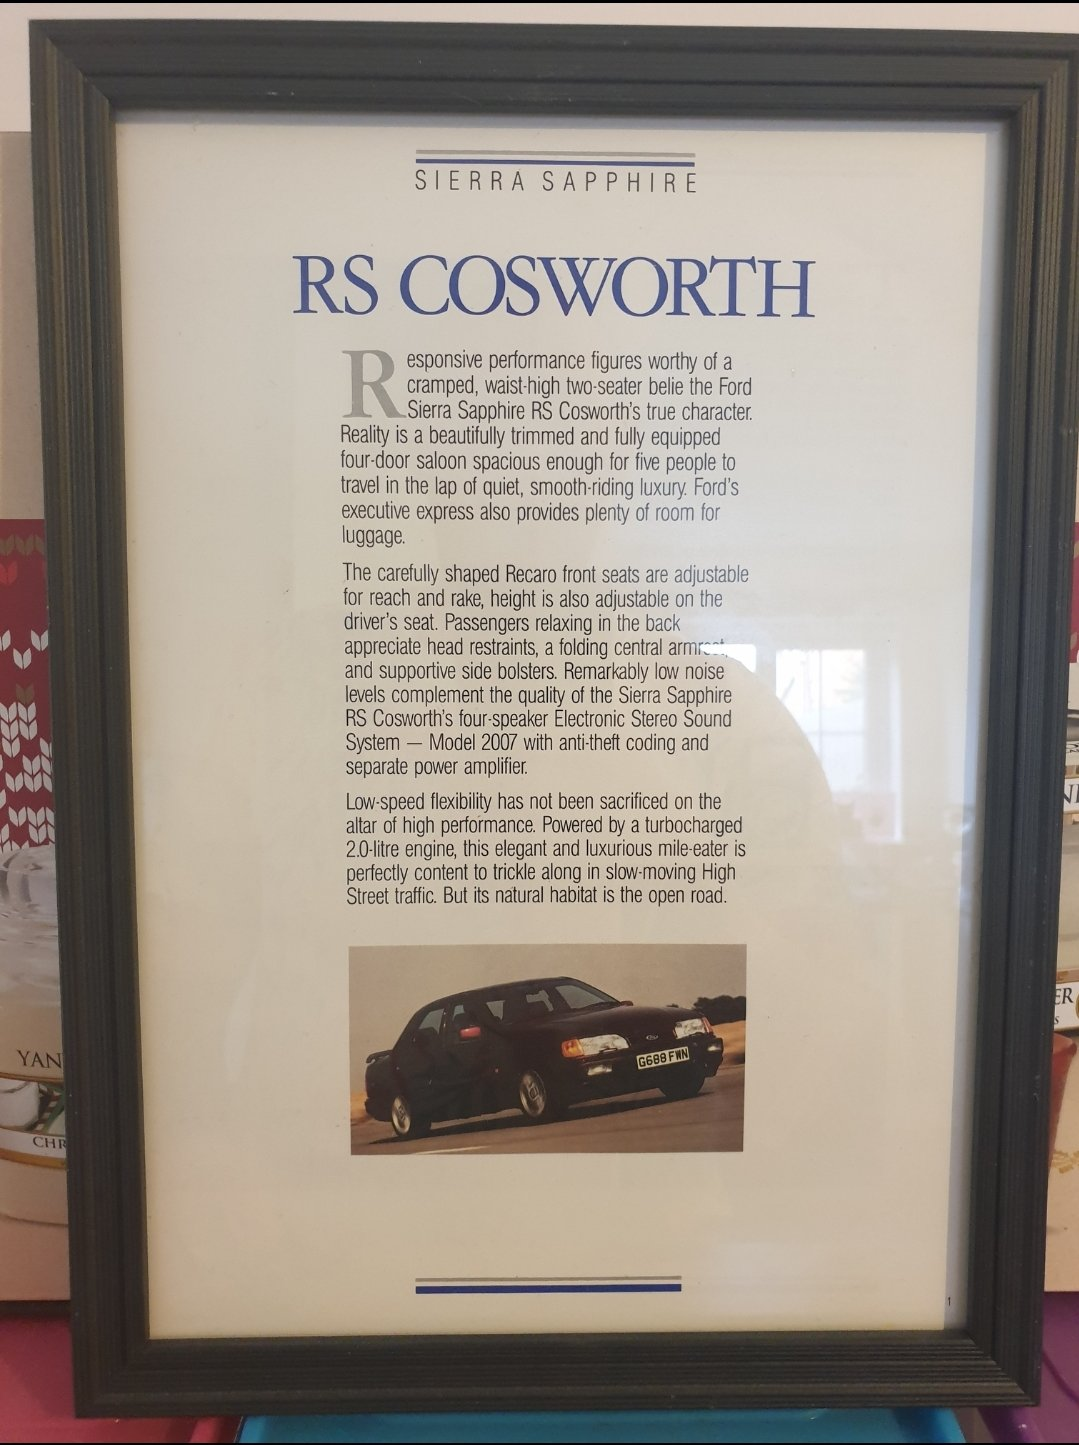 1989 Ford Sierra RS Cosworth Advert Original  For Sale (picture 1 of 2)